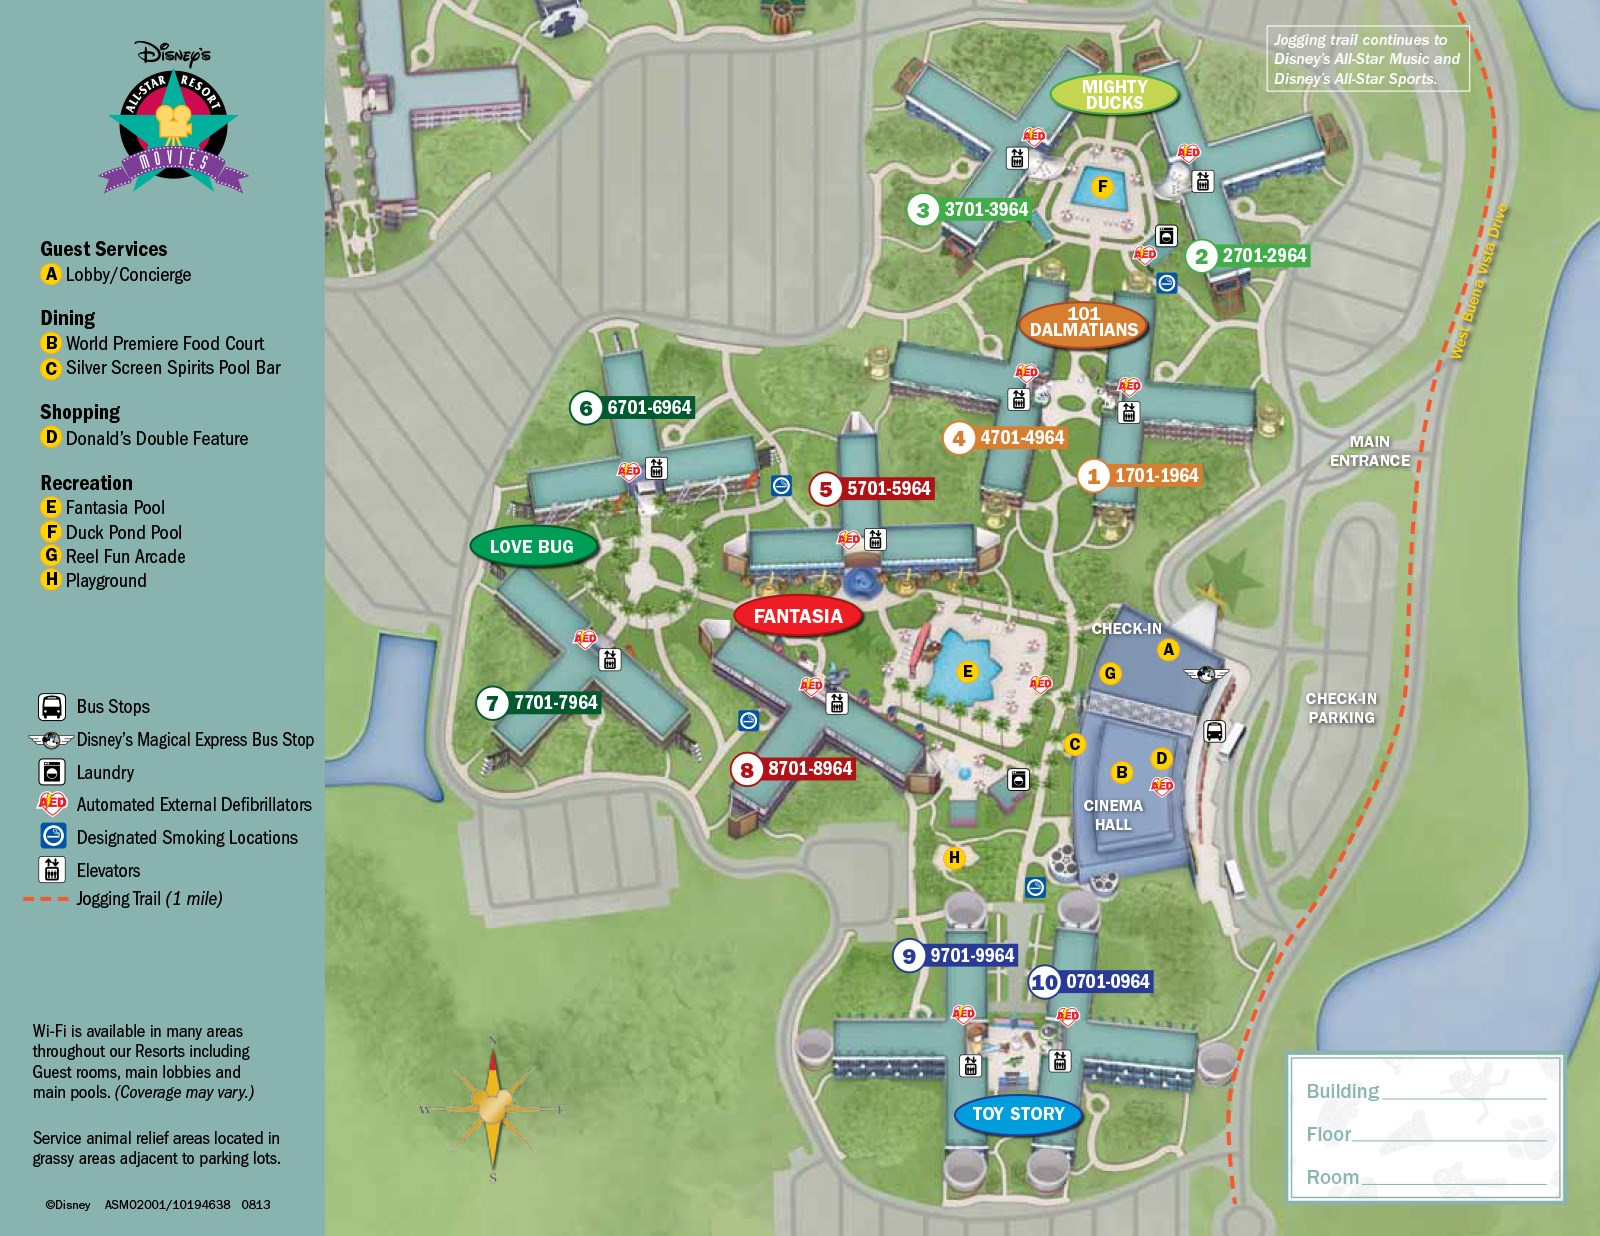 2013 All Star Movies Resort guide map